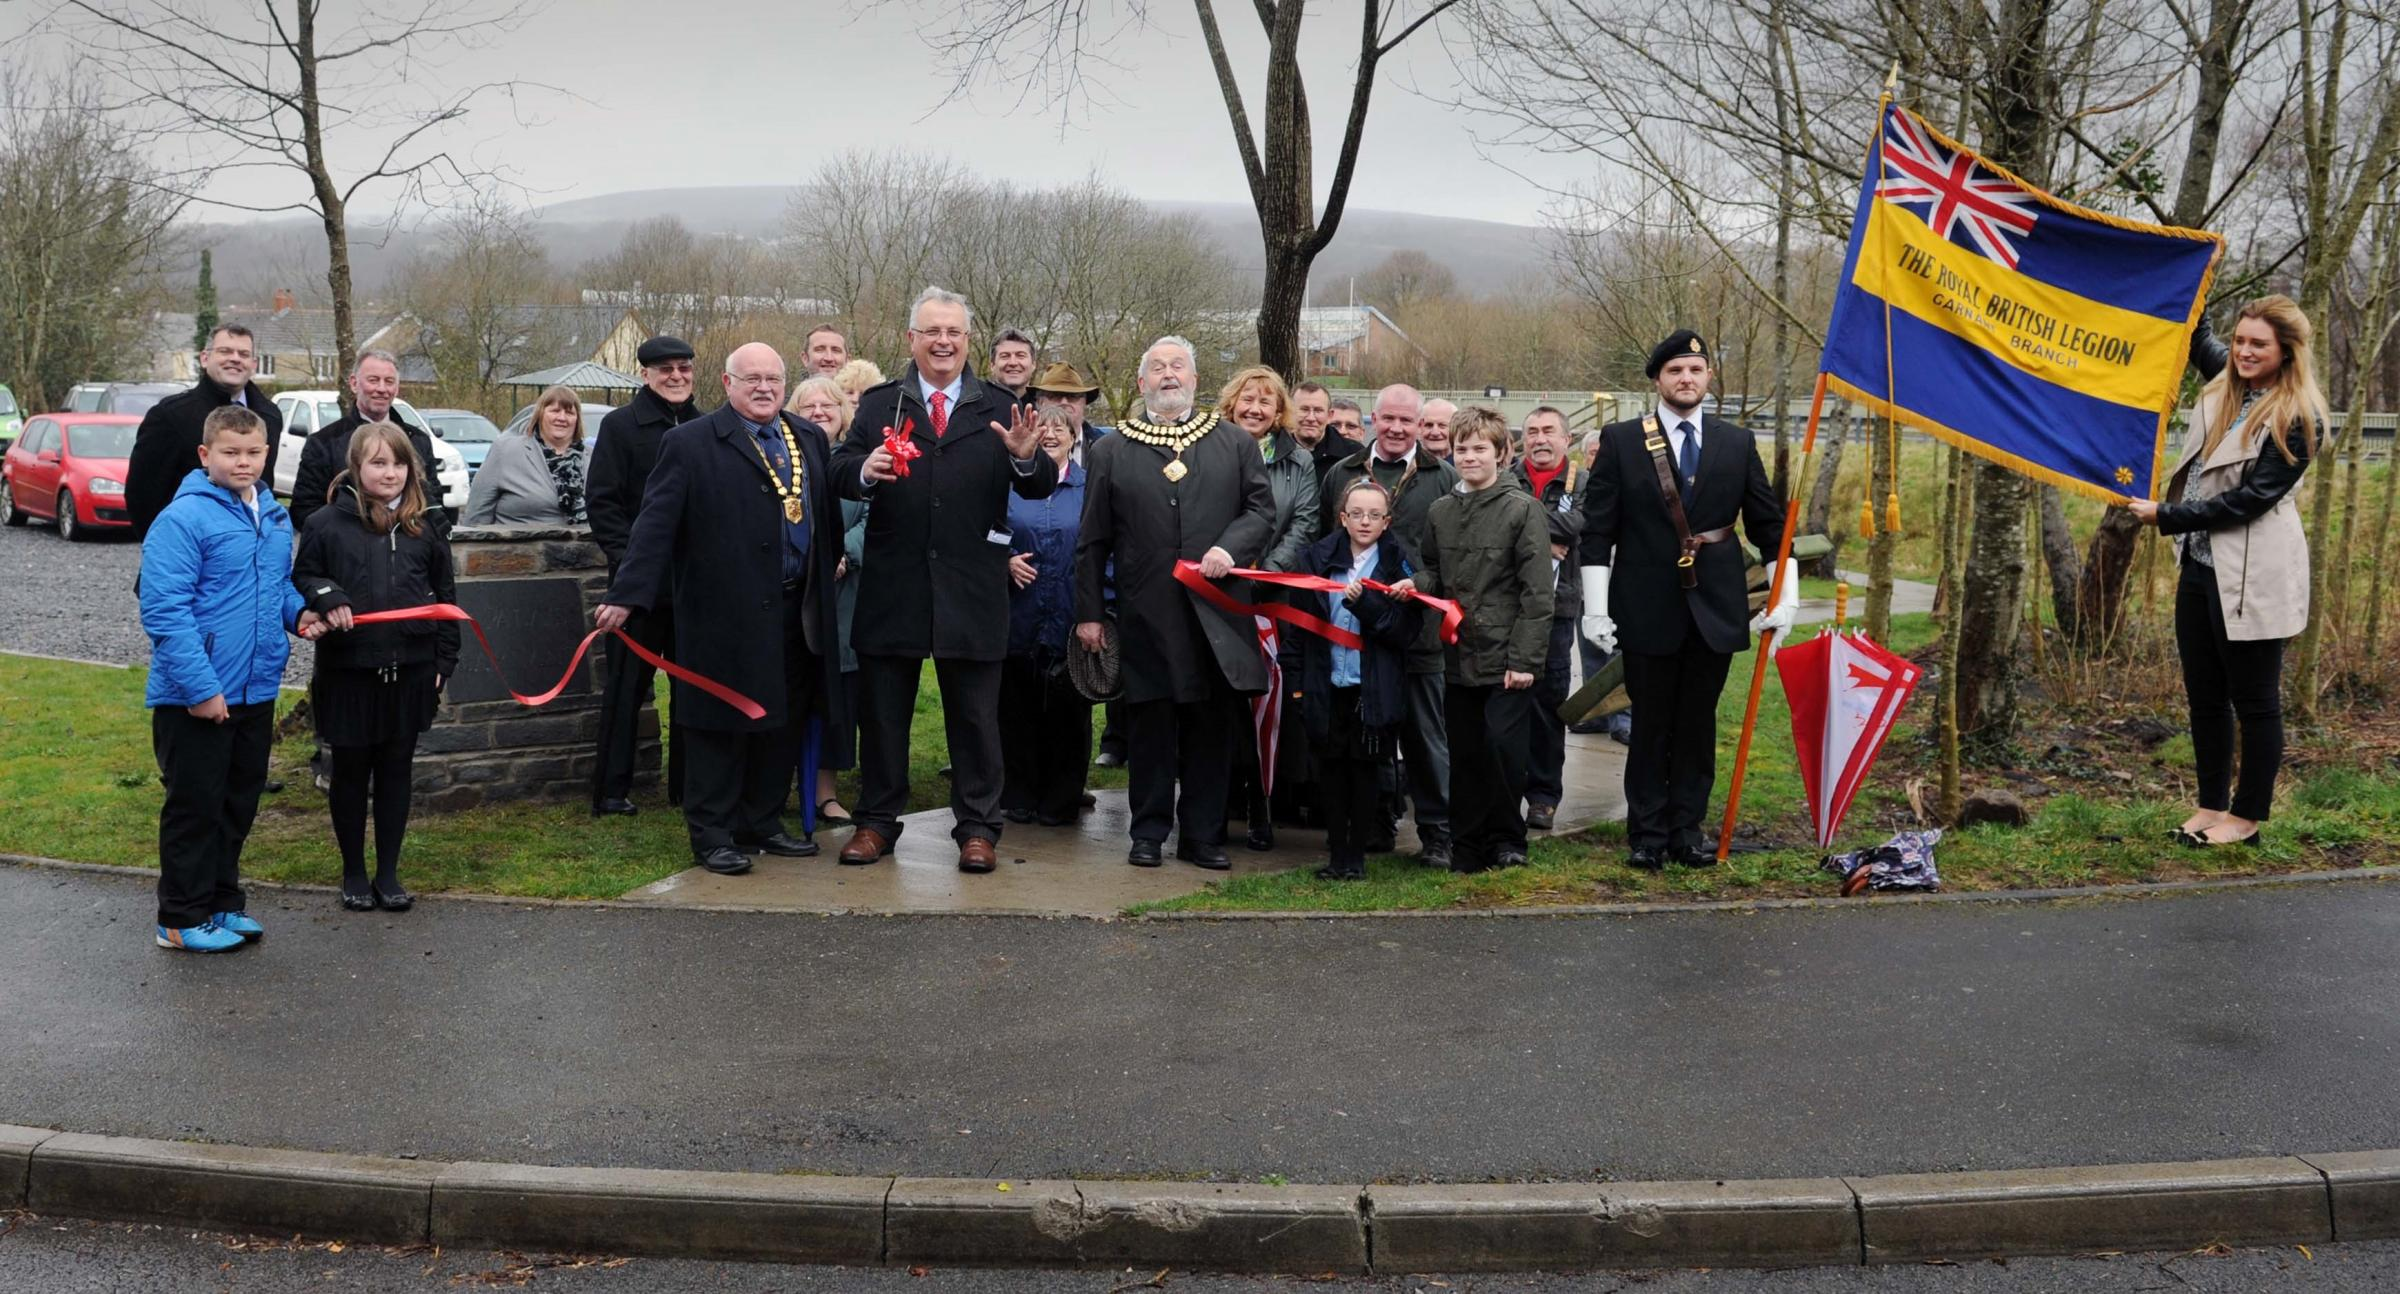 RIBBON DEVELOPMENT: Carmarthenshire County Council Leader Cllr Kevin Madge cuts the tape to open the car park.